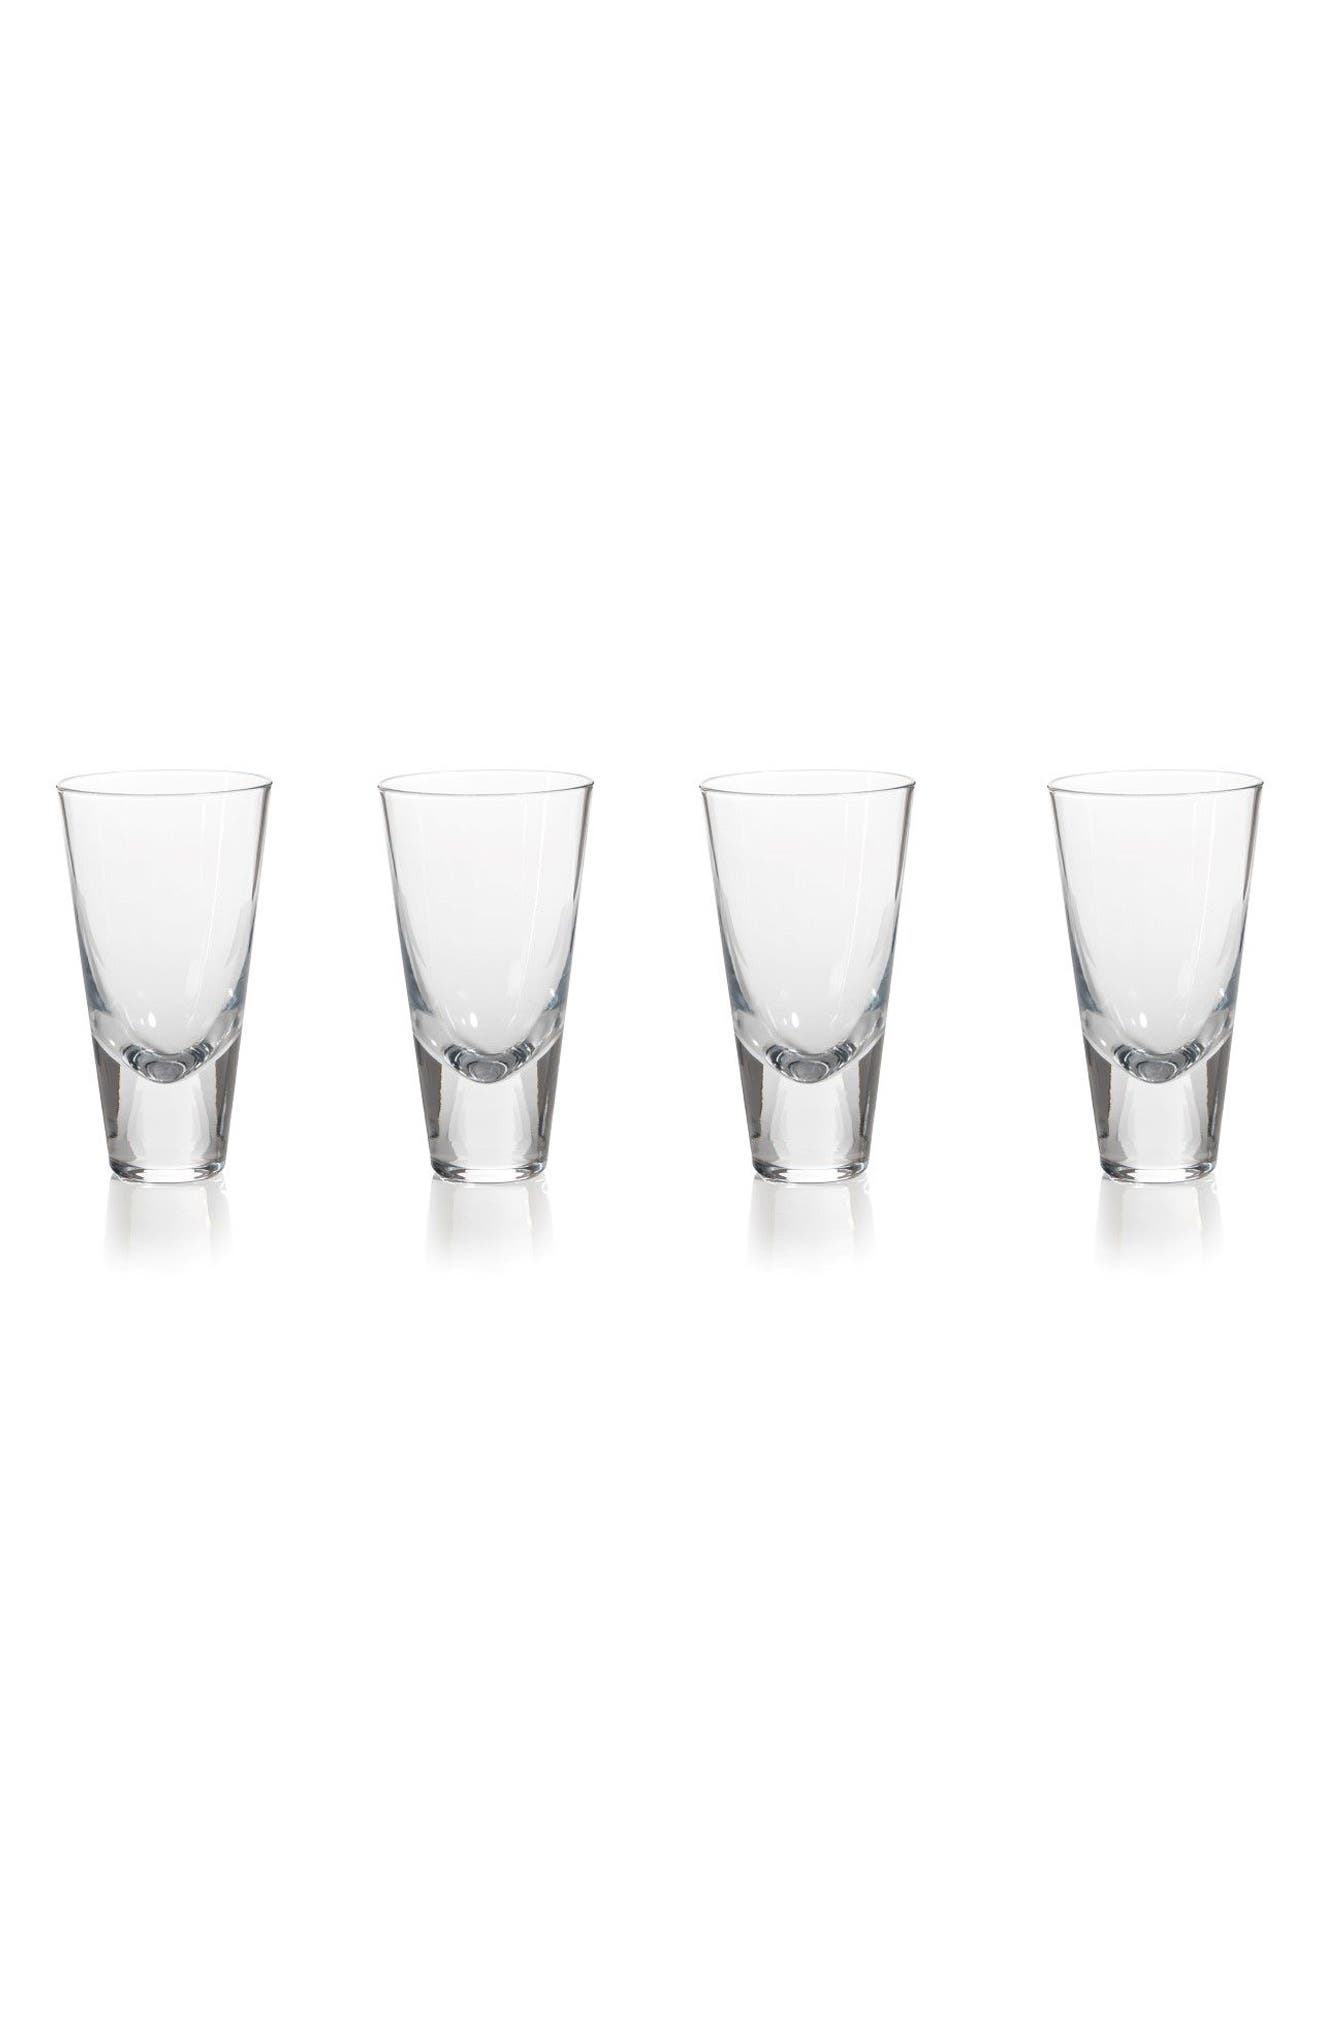 Anatole Set of 4 Drinking Glasses,                         Main,                         color, 100